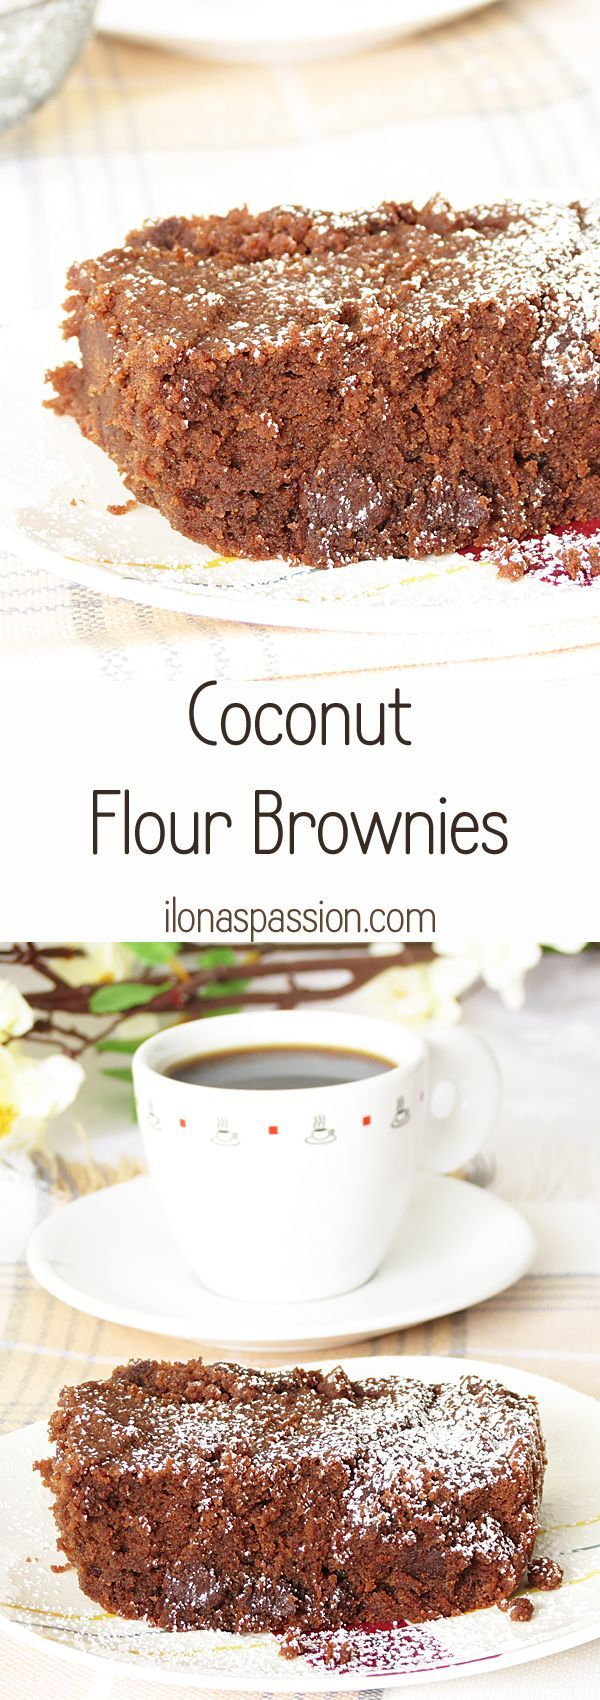 Chocolaty Brownies made with coconut flour by http://ilonaspassion.com